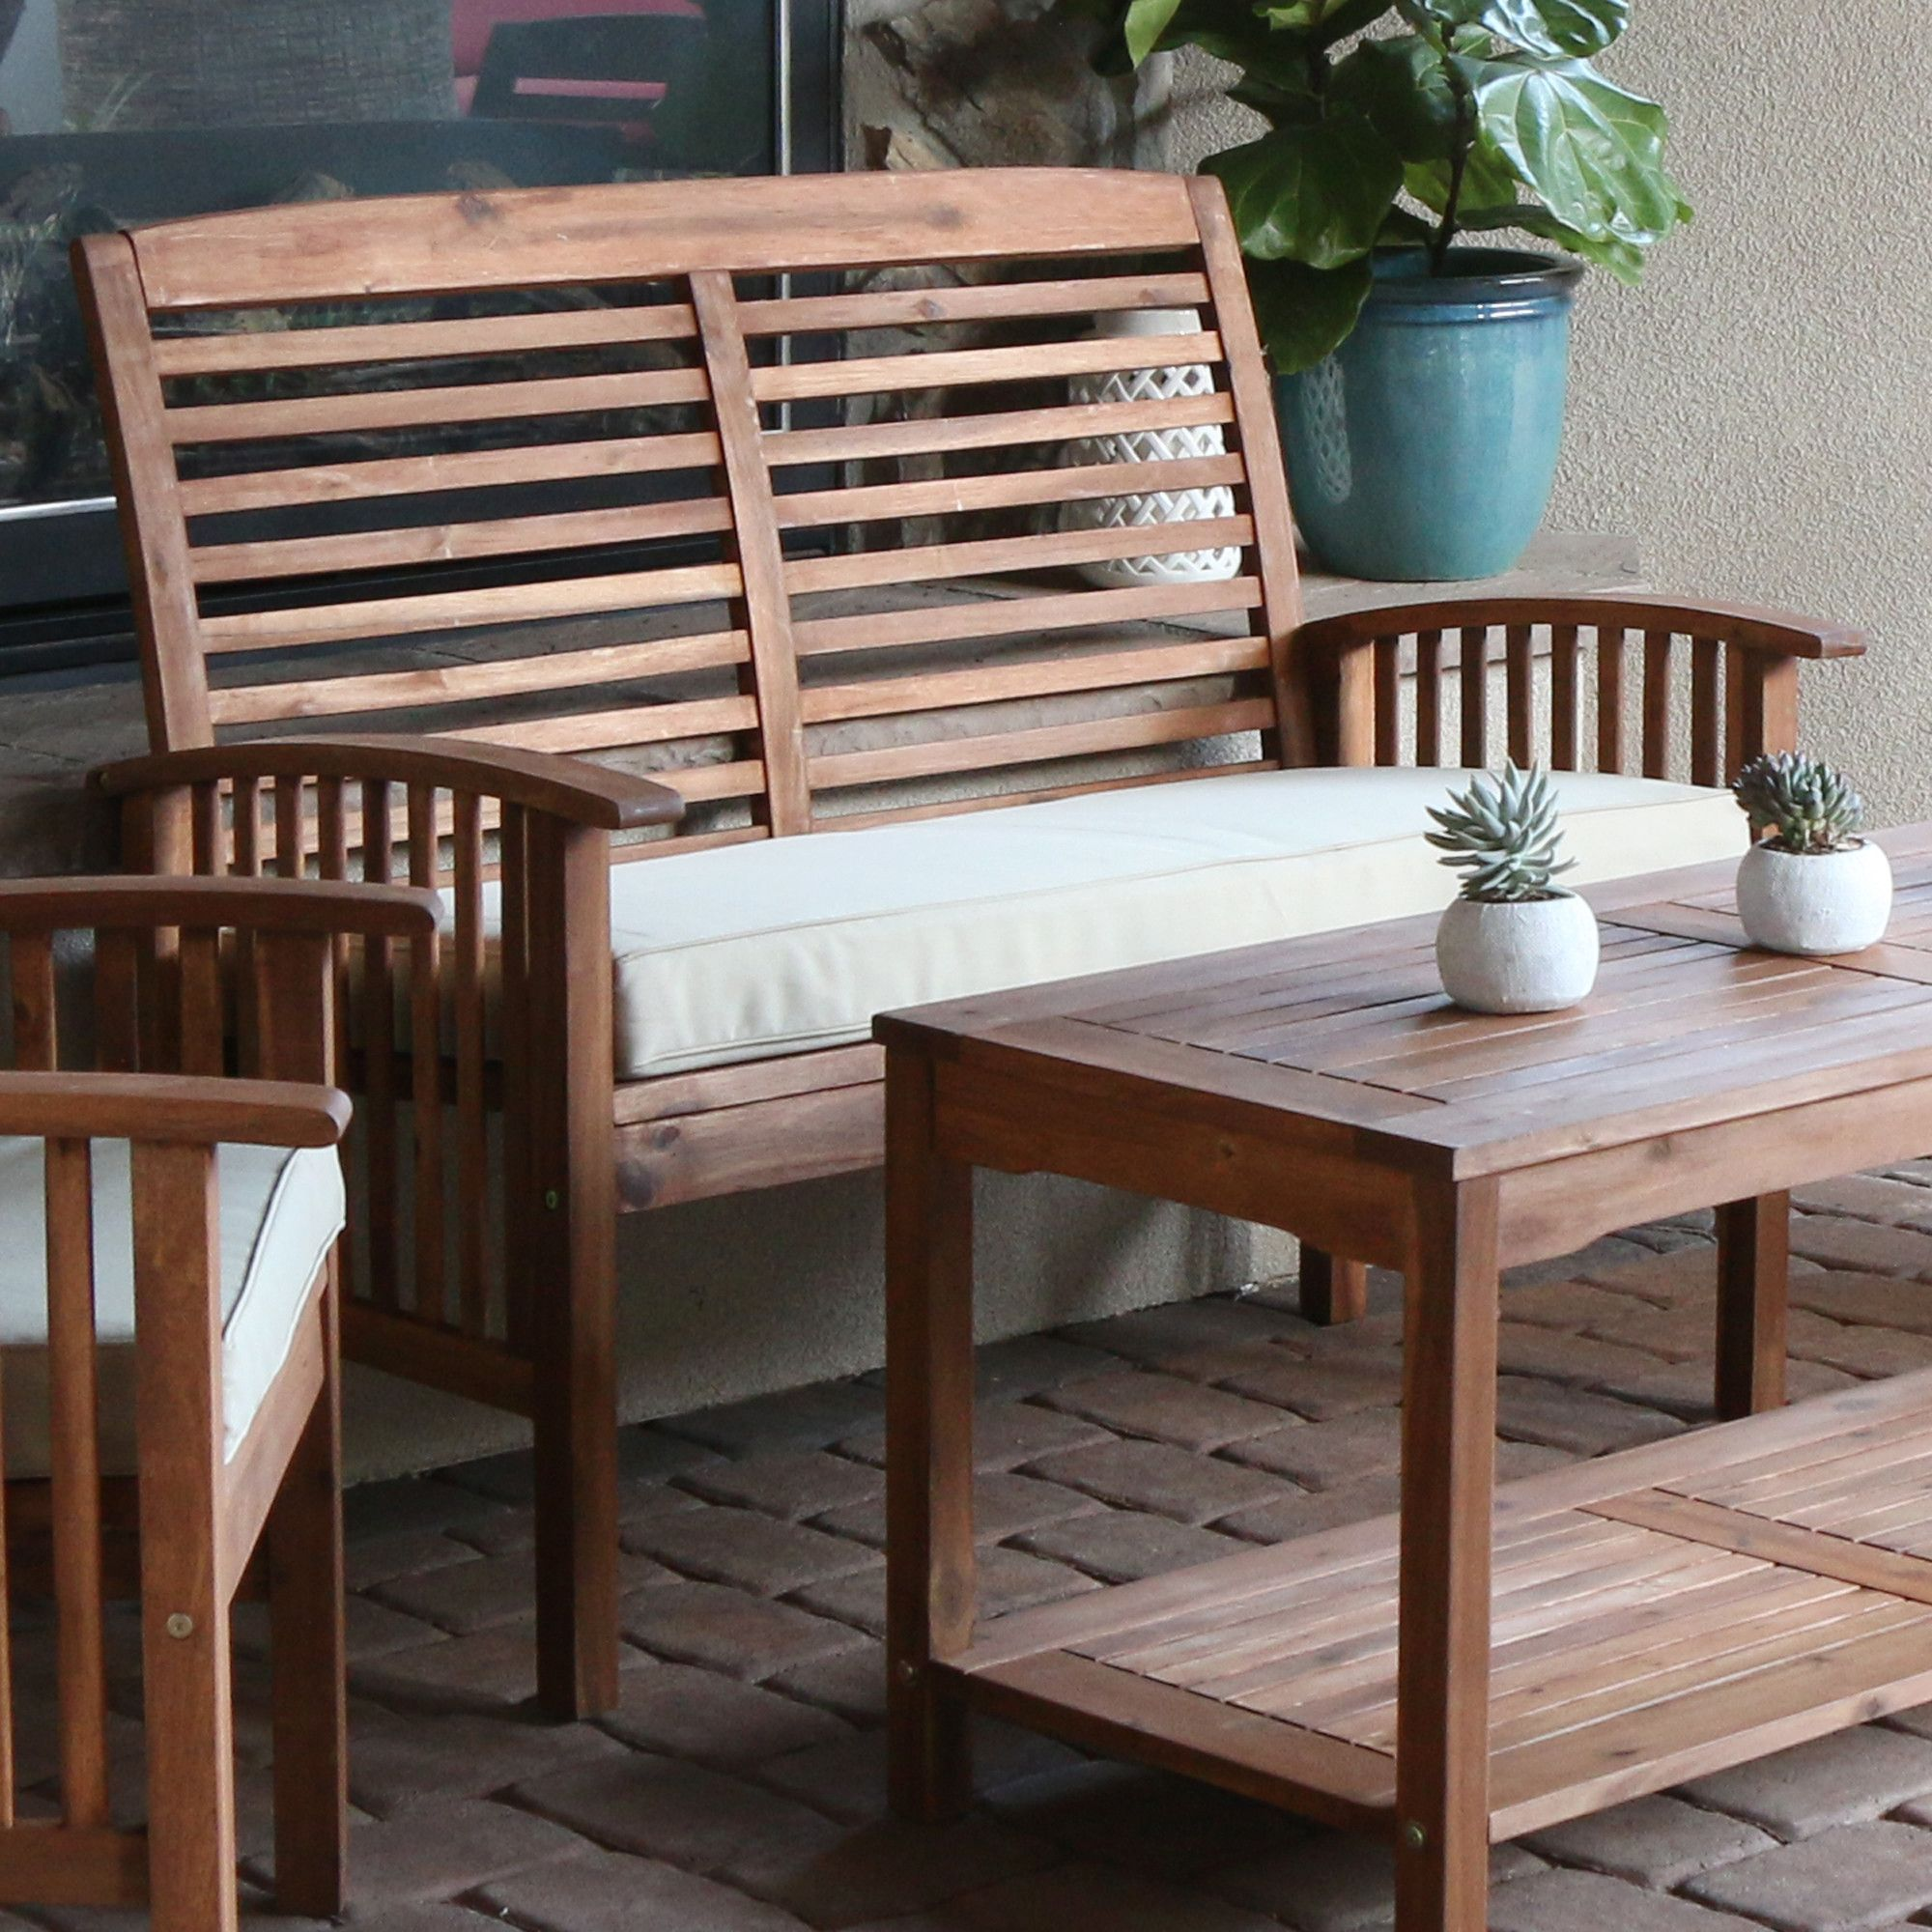 Darwin Acacia Patio Loveseat Products Pinterest